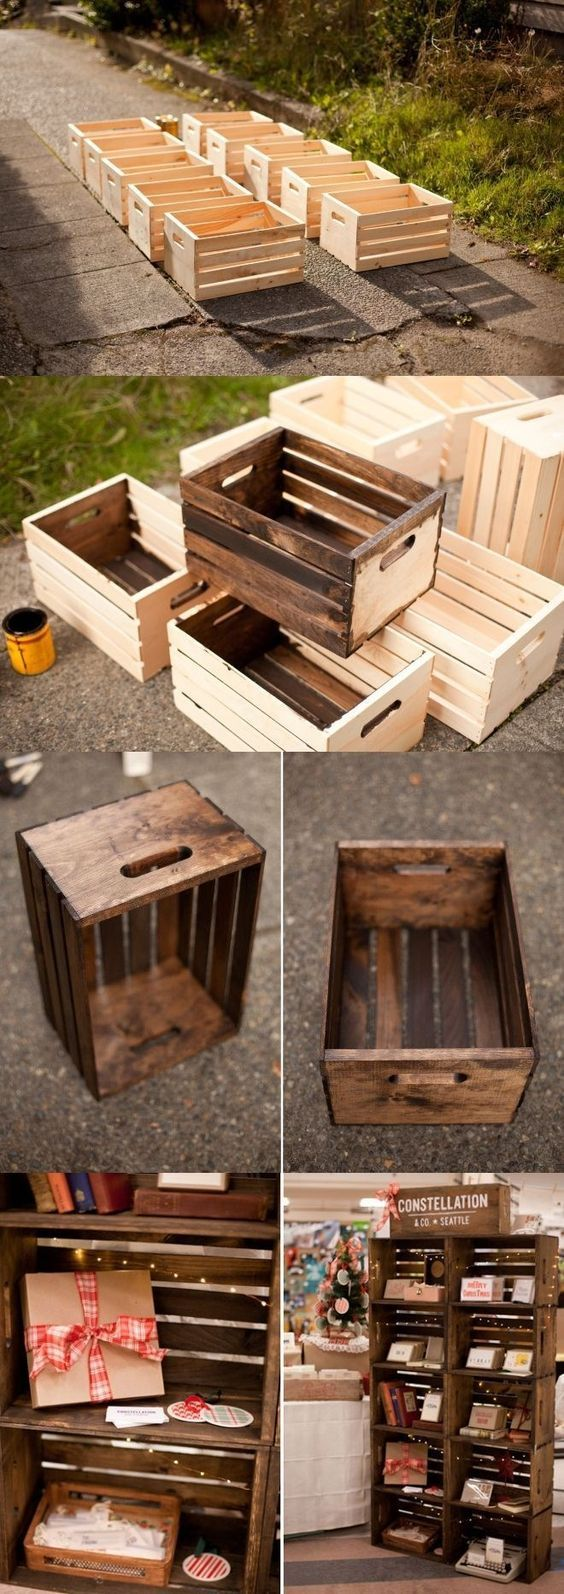 15 DIY Rustic Decoration to Help Upgrade Your Home - 4.Rusty Boxes - Diy & Crafts Ideas Magazine